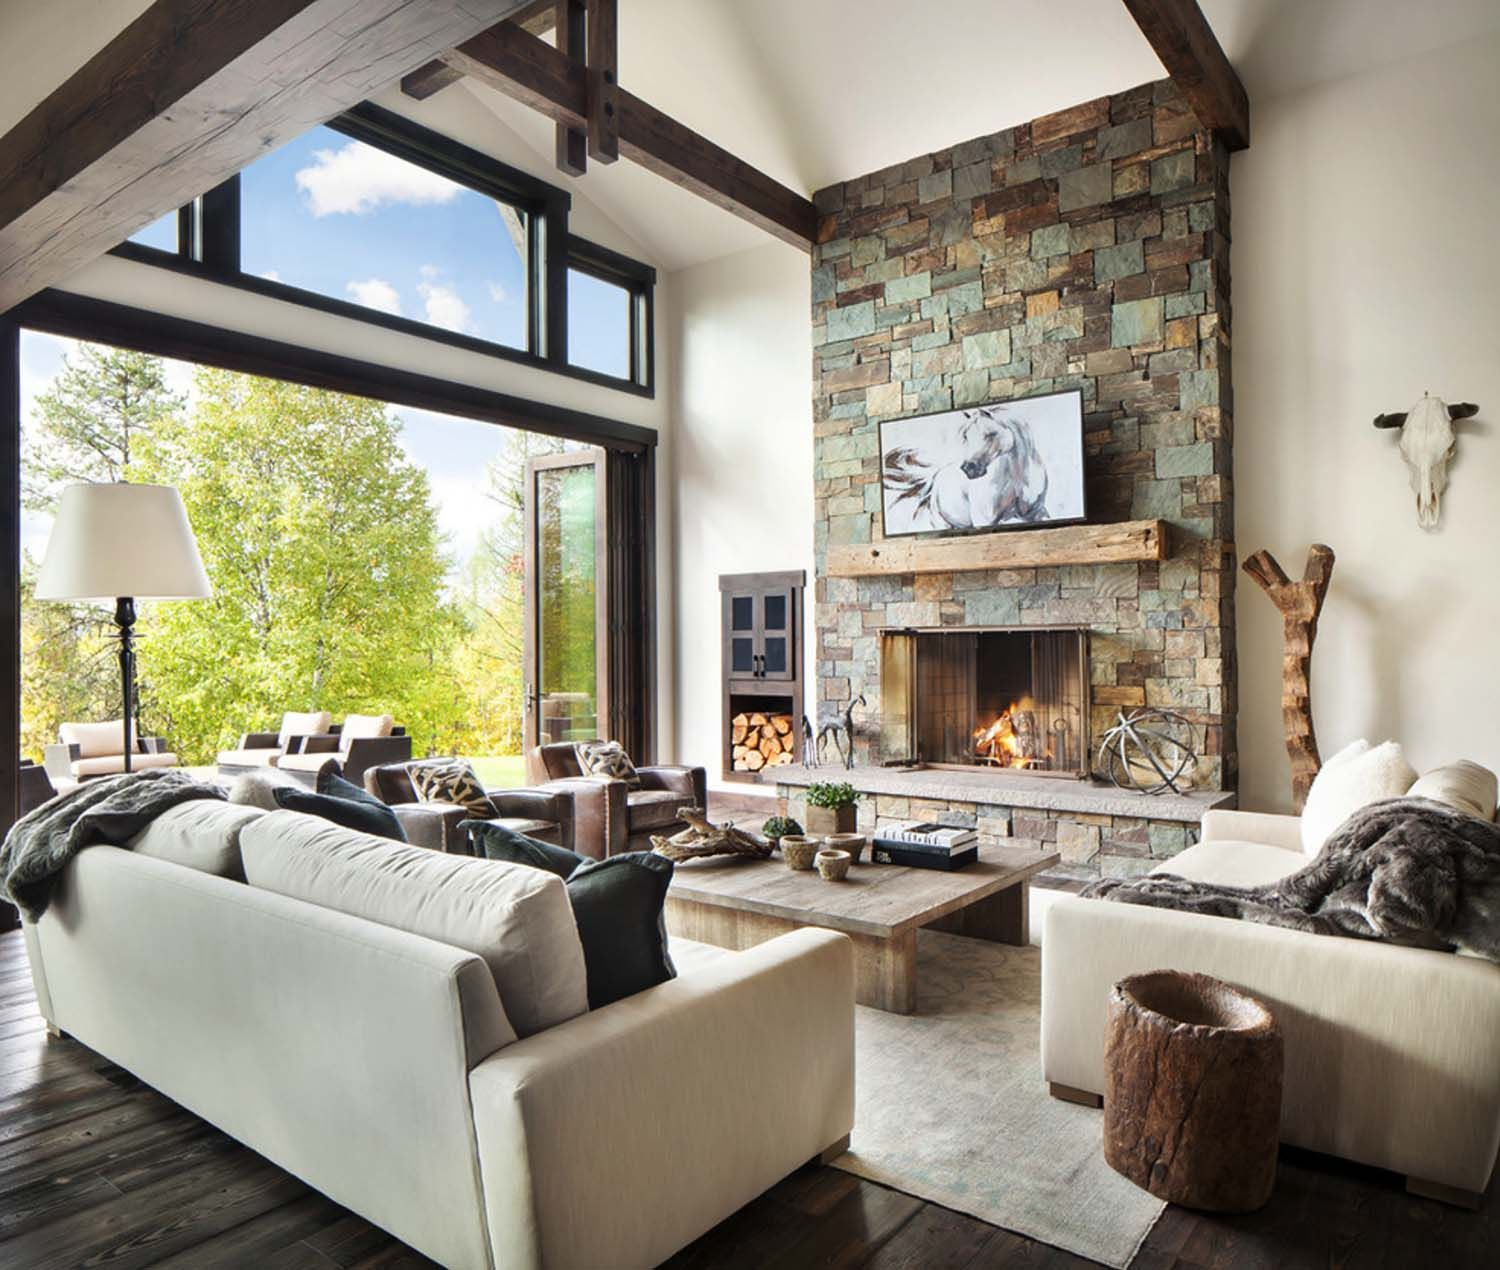 Inspiring Modern Home In Aspen With A Charming Interior Design